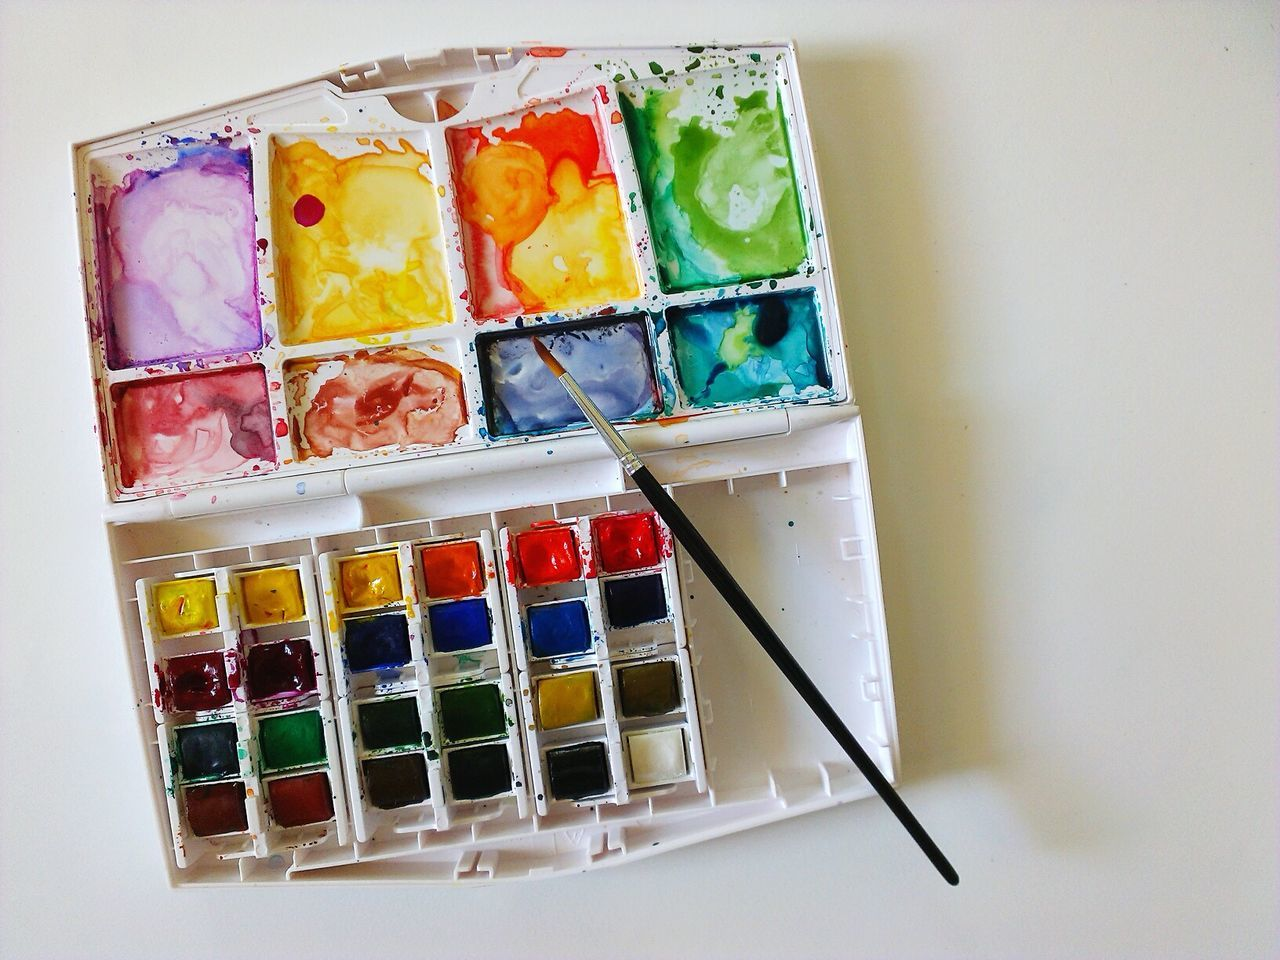 Studio Shot Multi Colored No People Close-up White Background Indoors  Mobile Photography Watercolor Paints High Angle View Watercolor Painting Arts And Crafts Artsy Creativity Copy Space Watercolor